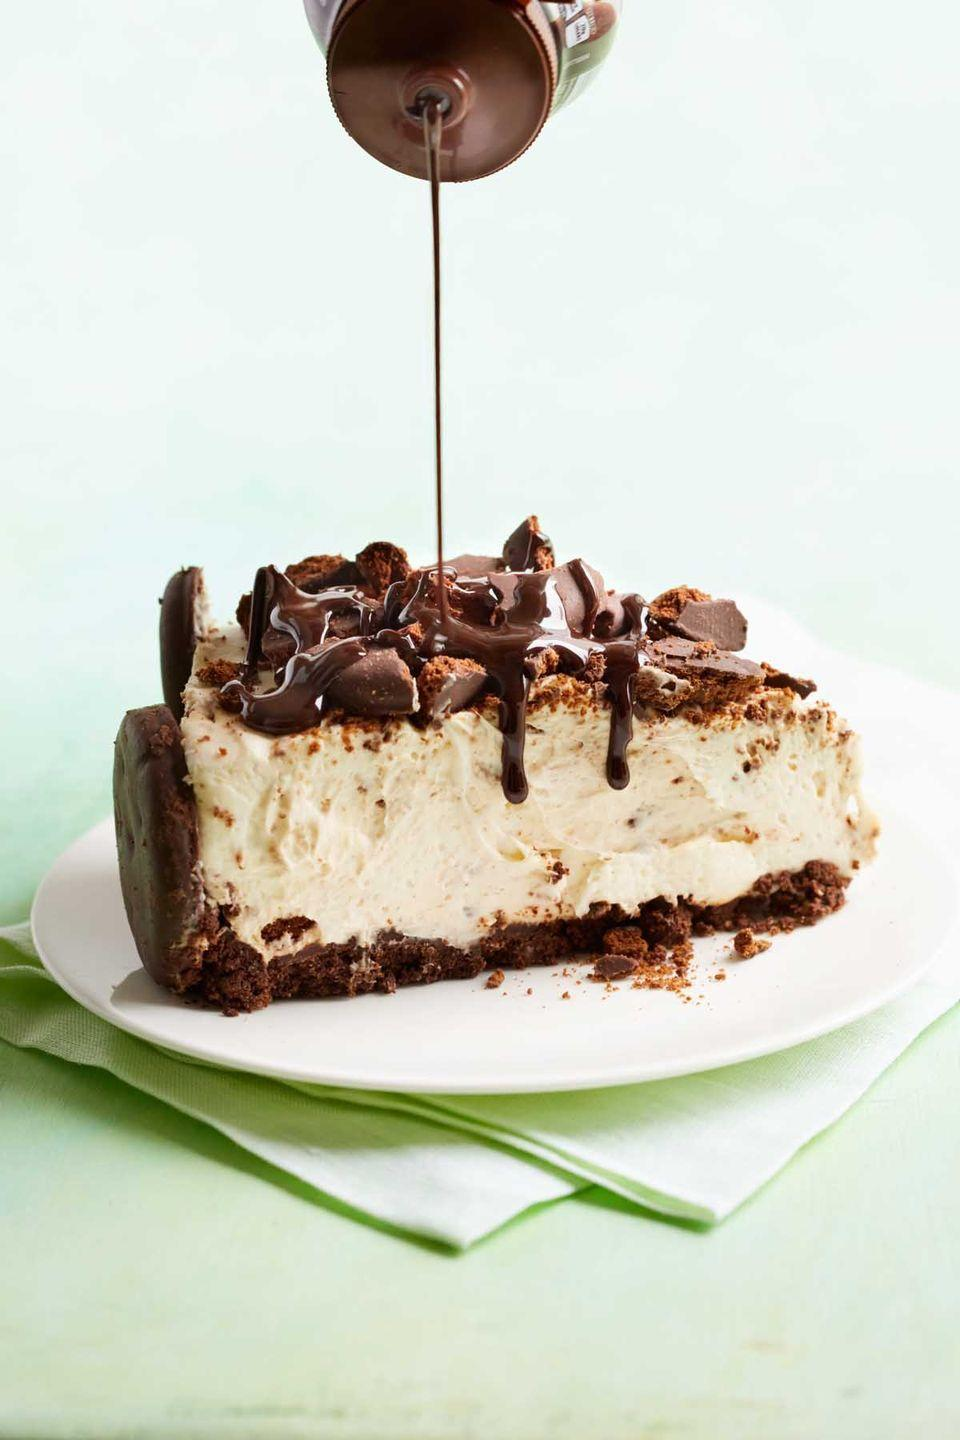 """<p>Surprise your mom with this one-of-a-kind cheesecake, which features everyone's favorite Girl Scout cookie. </p><p><a href=""""https://www.womansday.com/food-recipes/recipes/a57465/thin-mint-cheesecake-recipe/"""" rel=""""nofollow noopener"""" target=""""_blank"""" data-ylk=""""slk:Get the recipe for Thin Mint Cheesecake."""" class=""""link rapid-noclick-resp""""><em>Get the recipe for Thin Mint Cheesecake.</em></a><br></p>"""